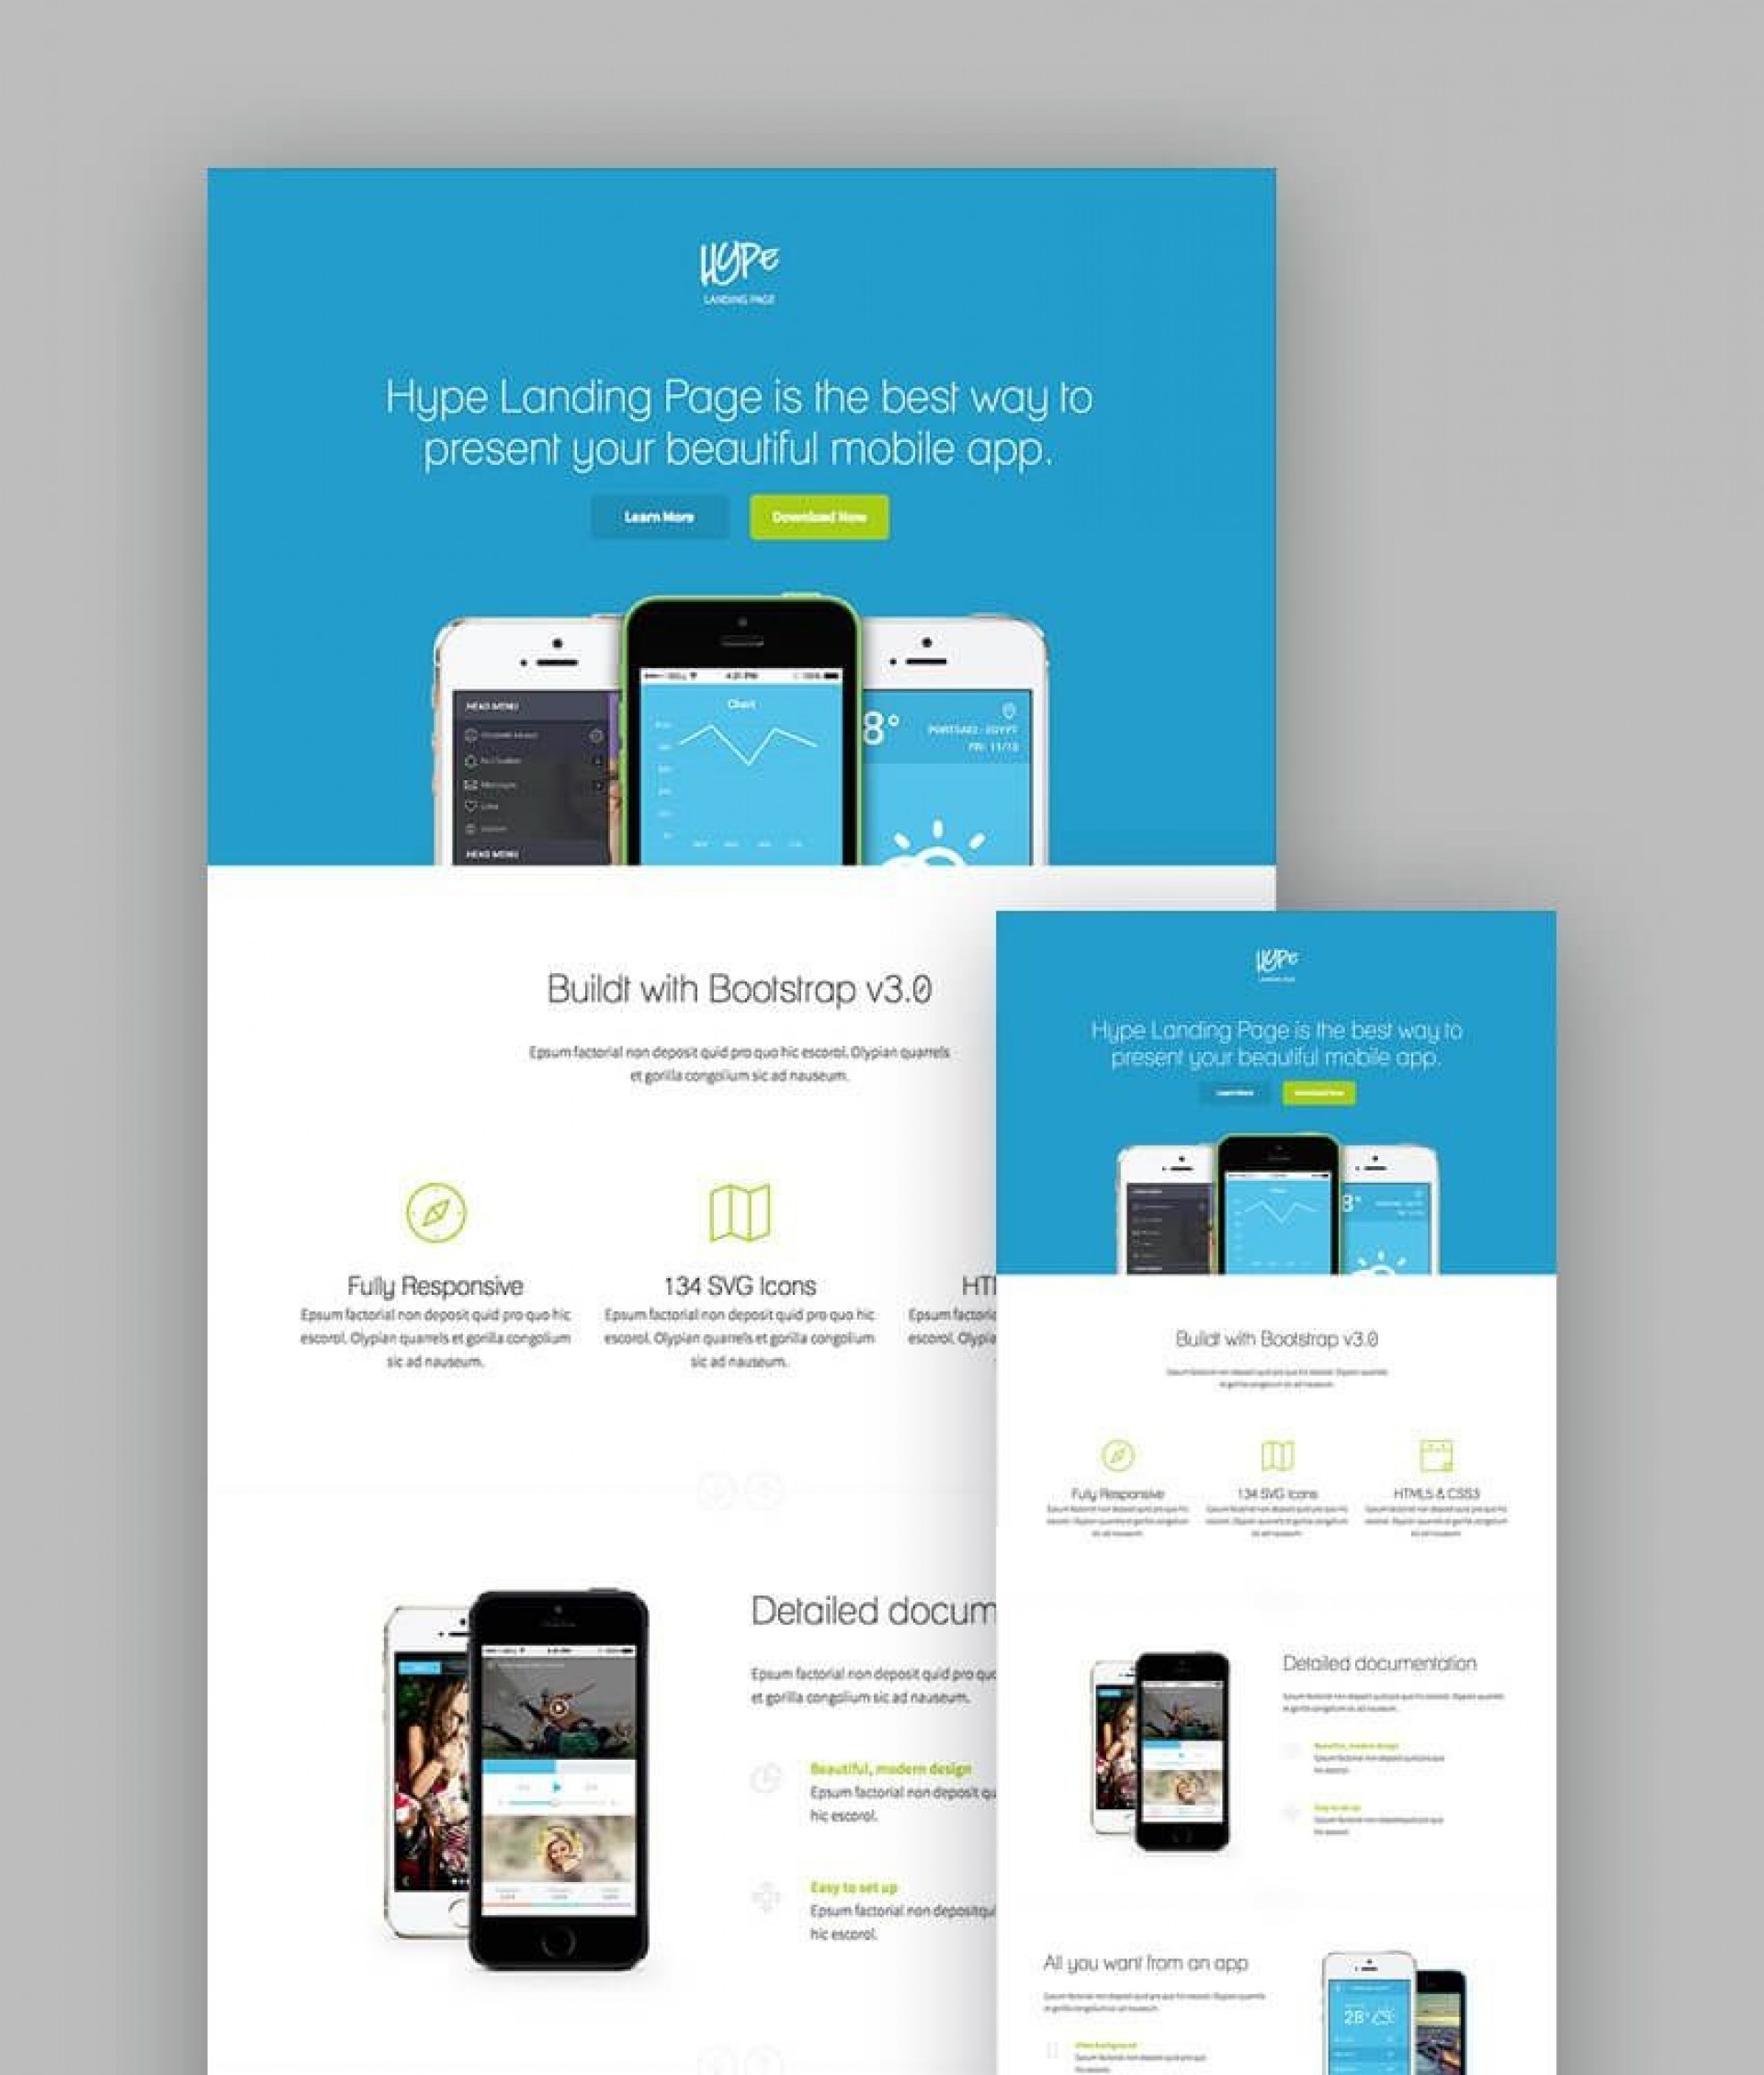 002 Best Csvape Esponsive Mobile App Landing Page Html Template Free Download Highest Clarity  Csvape-responsive-mobile-app-landing-page-html-template1920